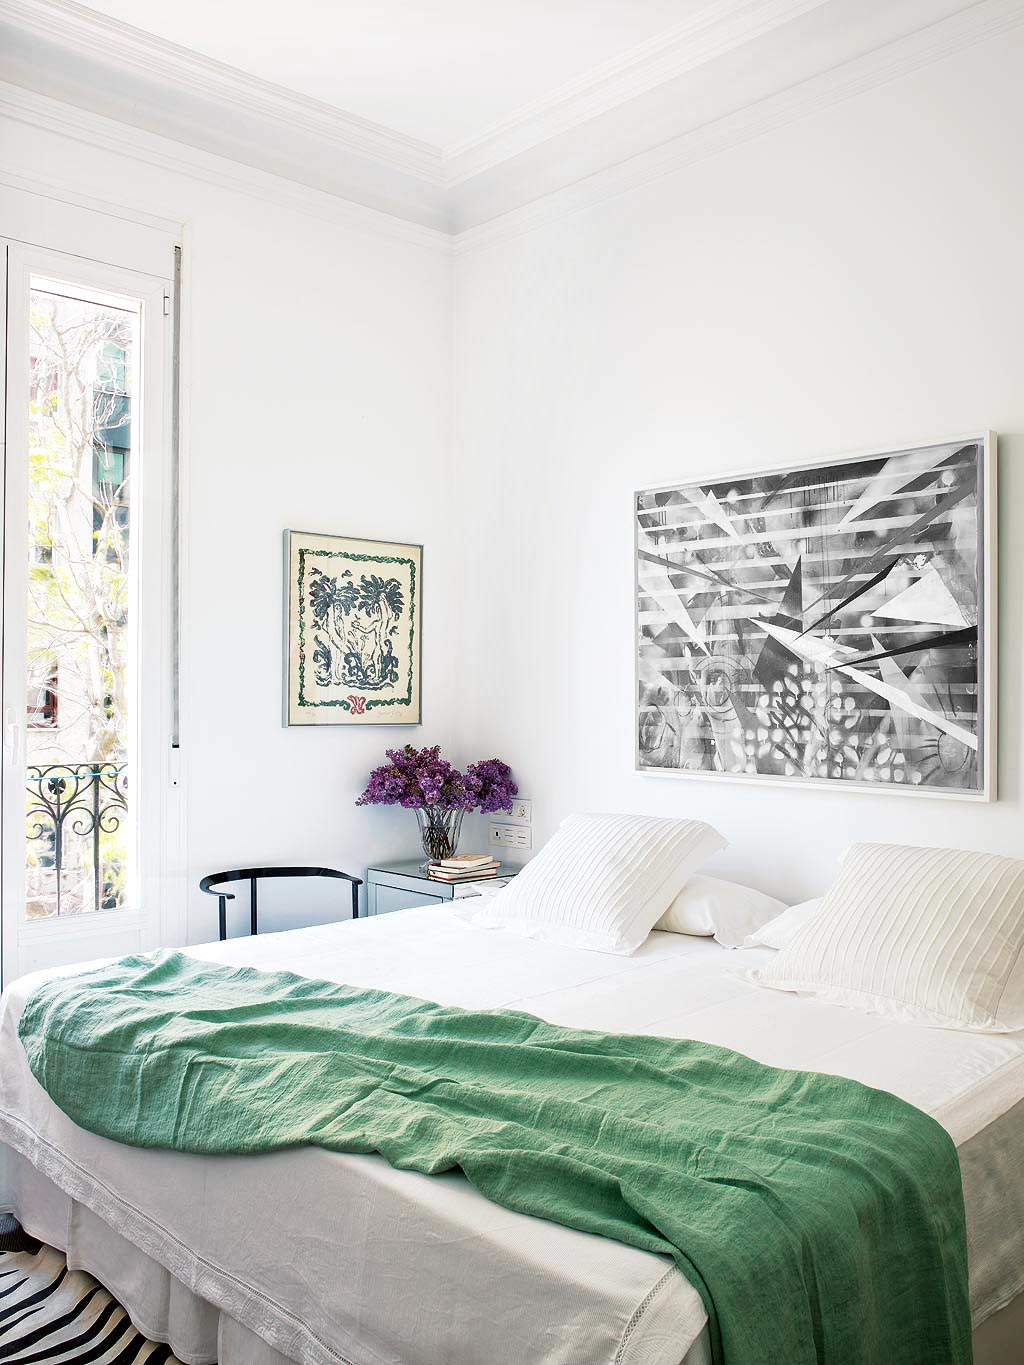 Simple bedroom with a green blanket via @thouswellblog